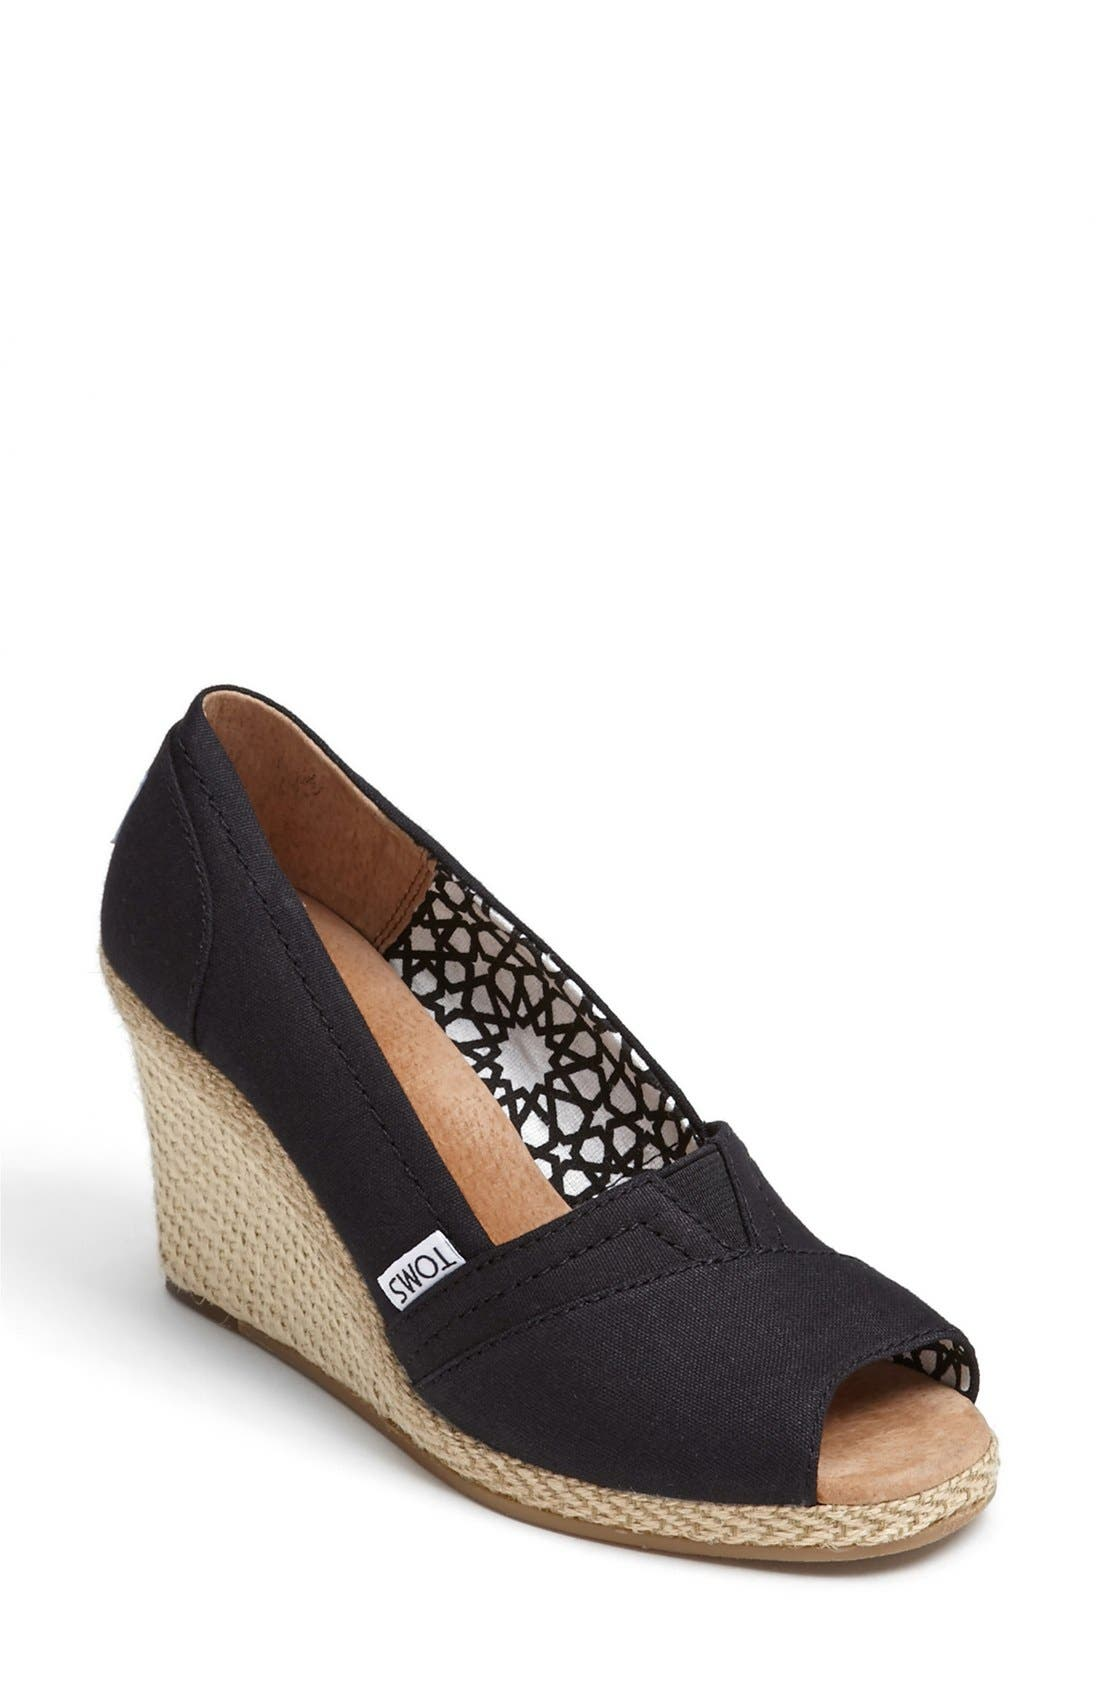 Alternate Image 1 Selected - TOMS 'Calypso' Canvas Wedge